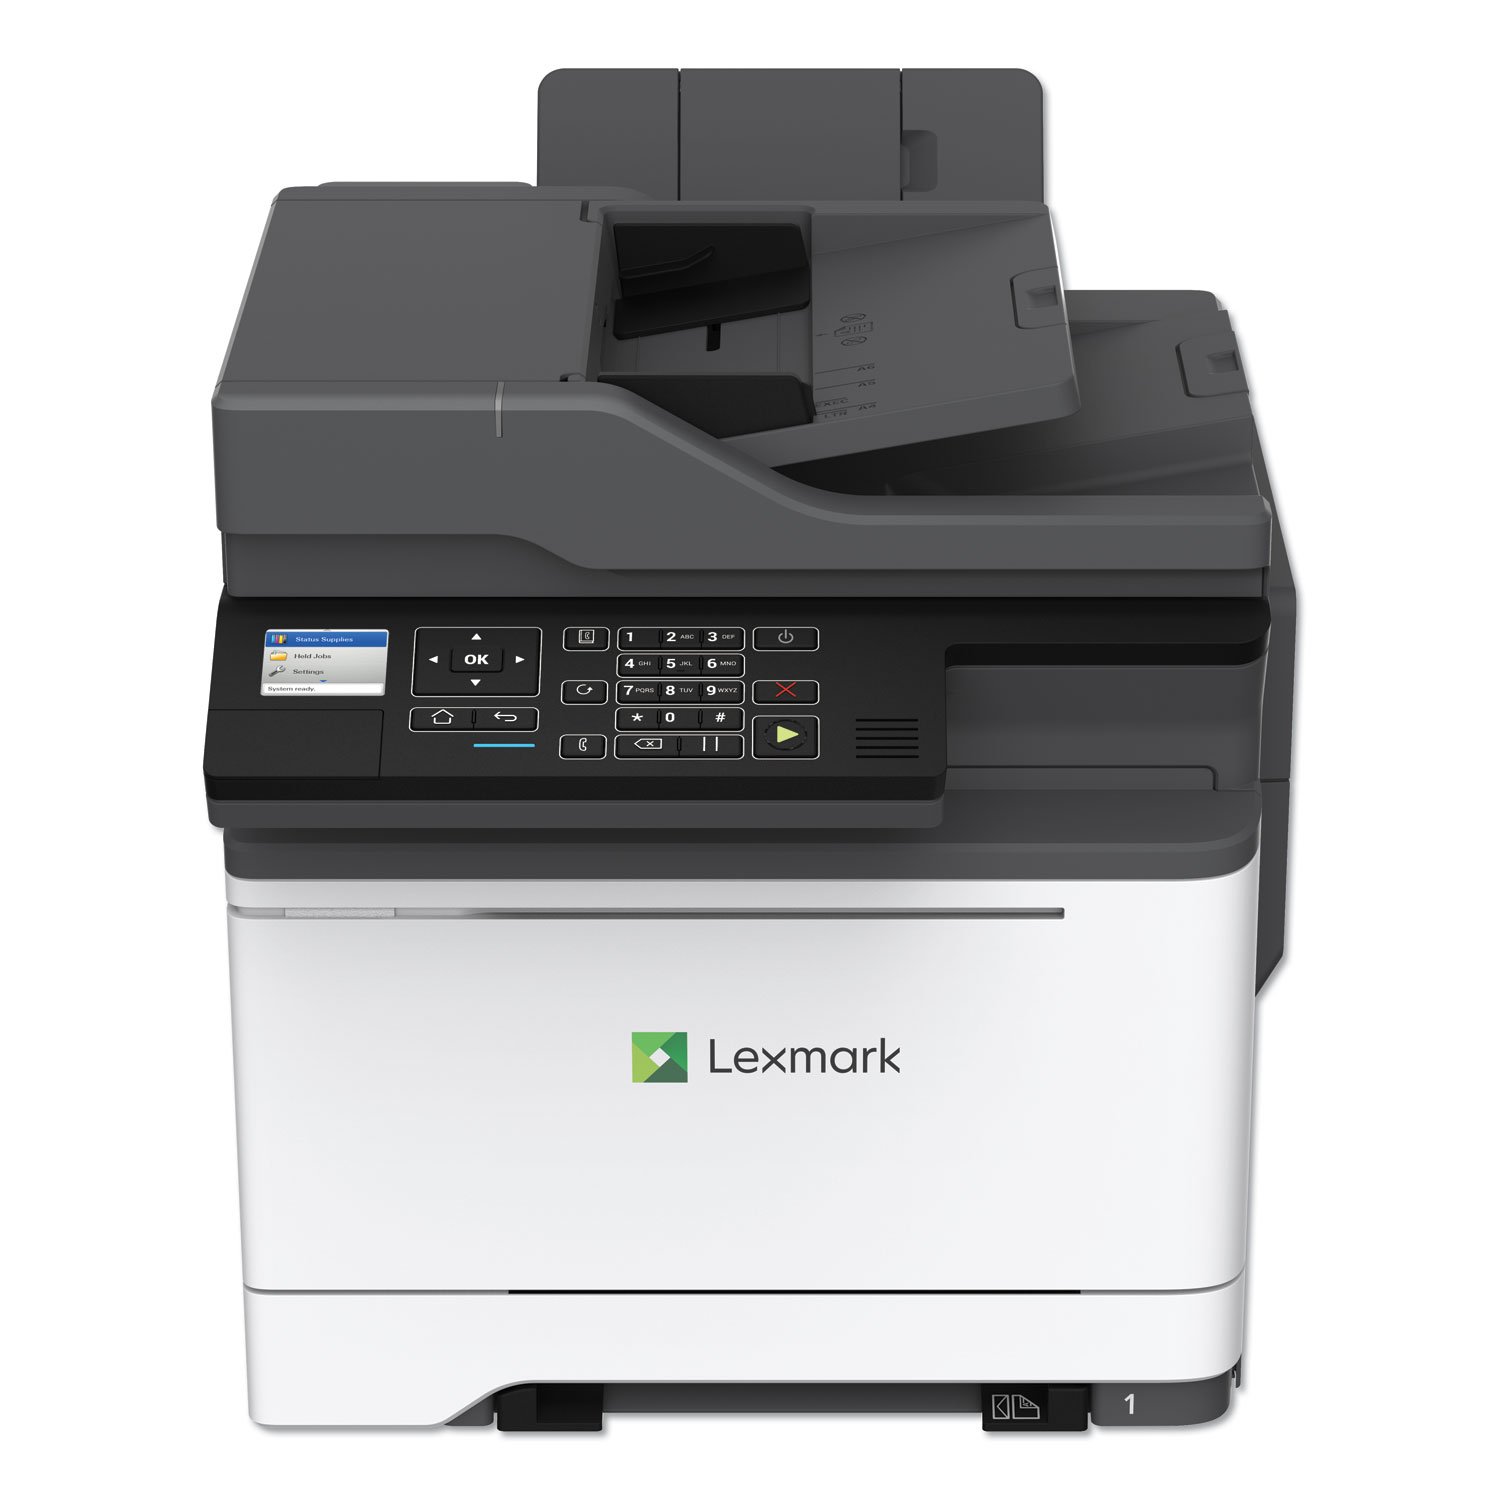 CX421adn Multifunction Printer, Copy/Fax/Print/Scan